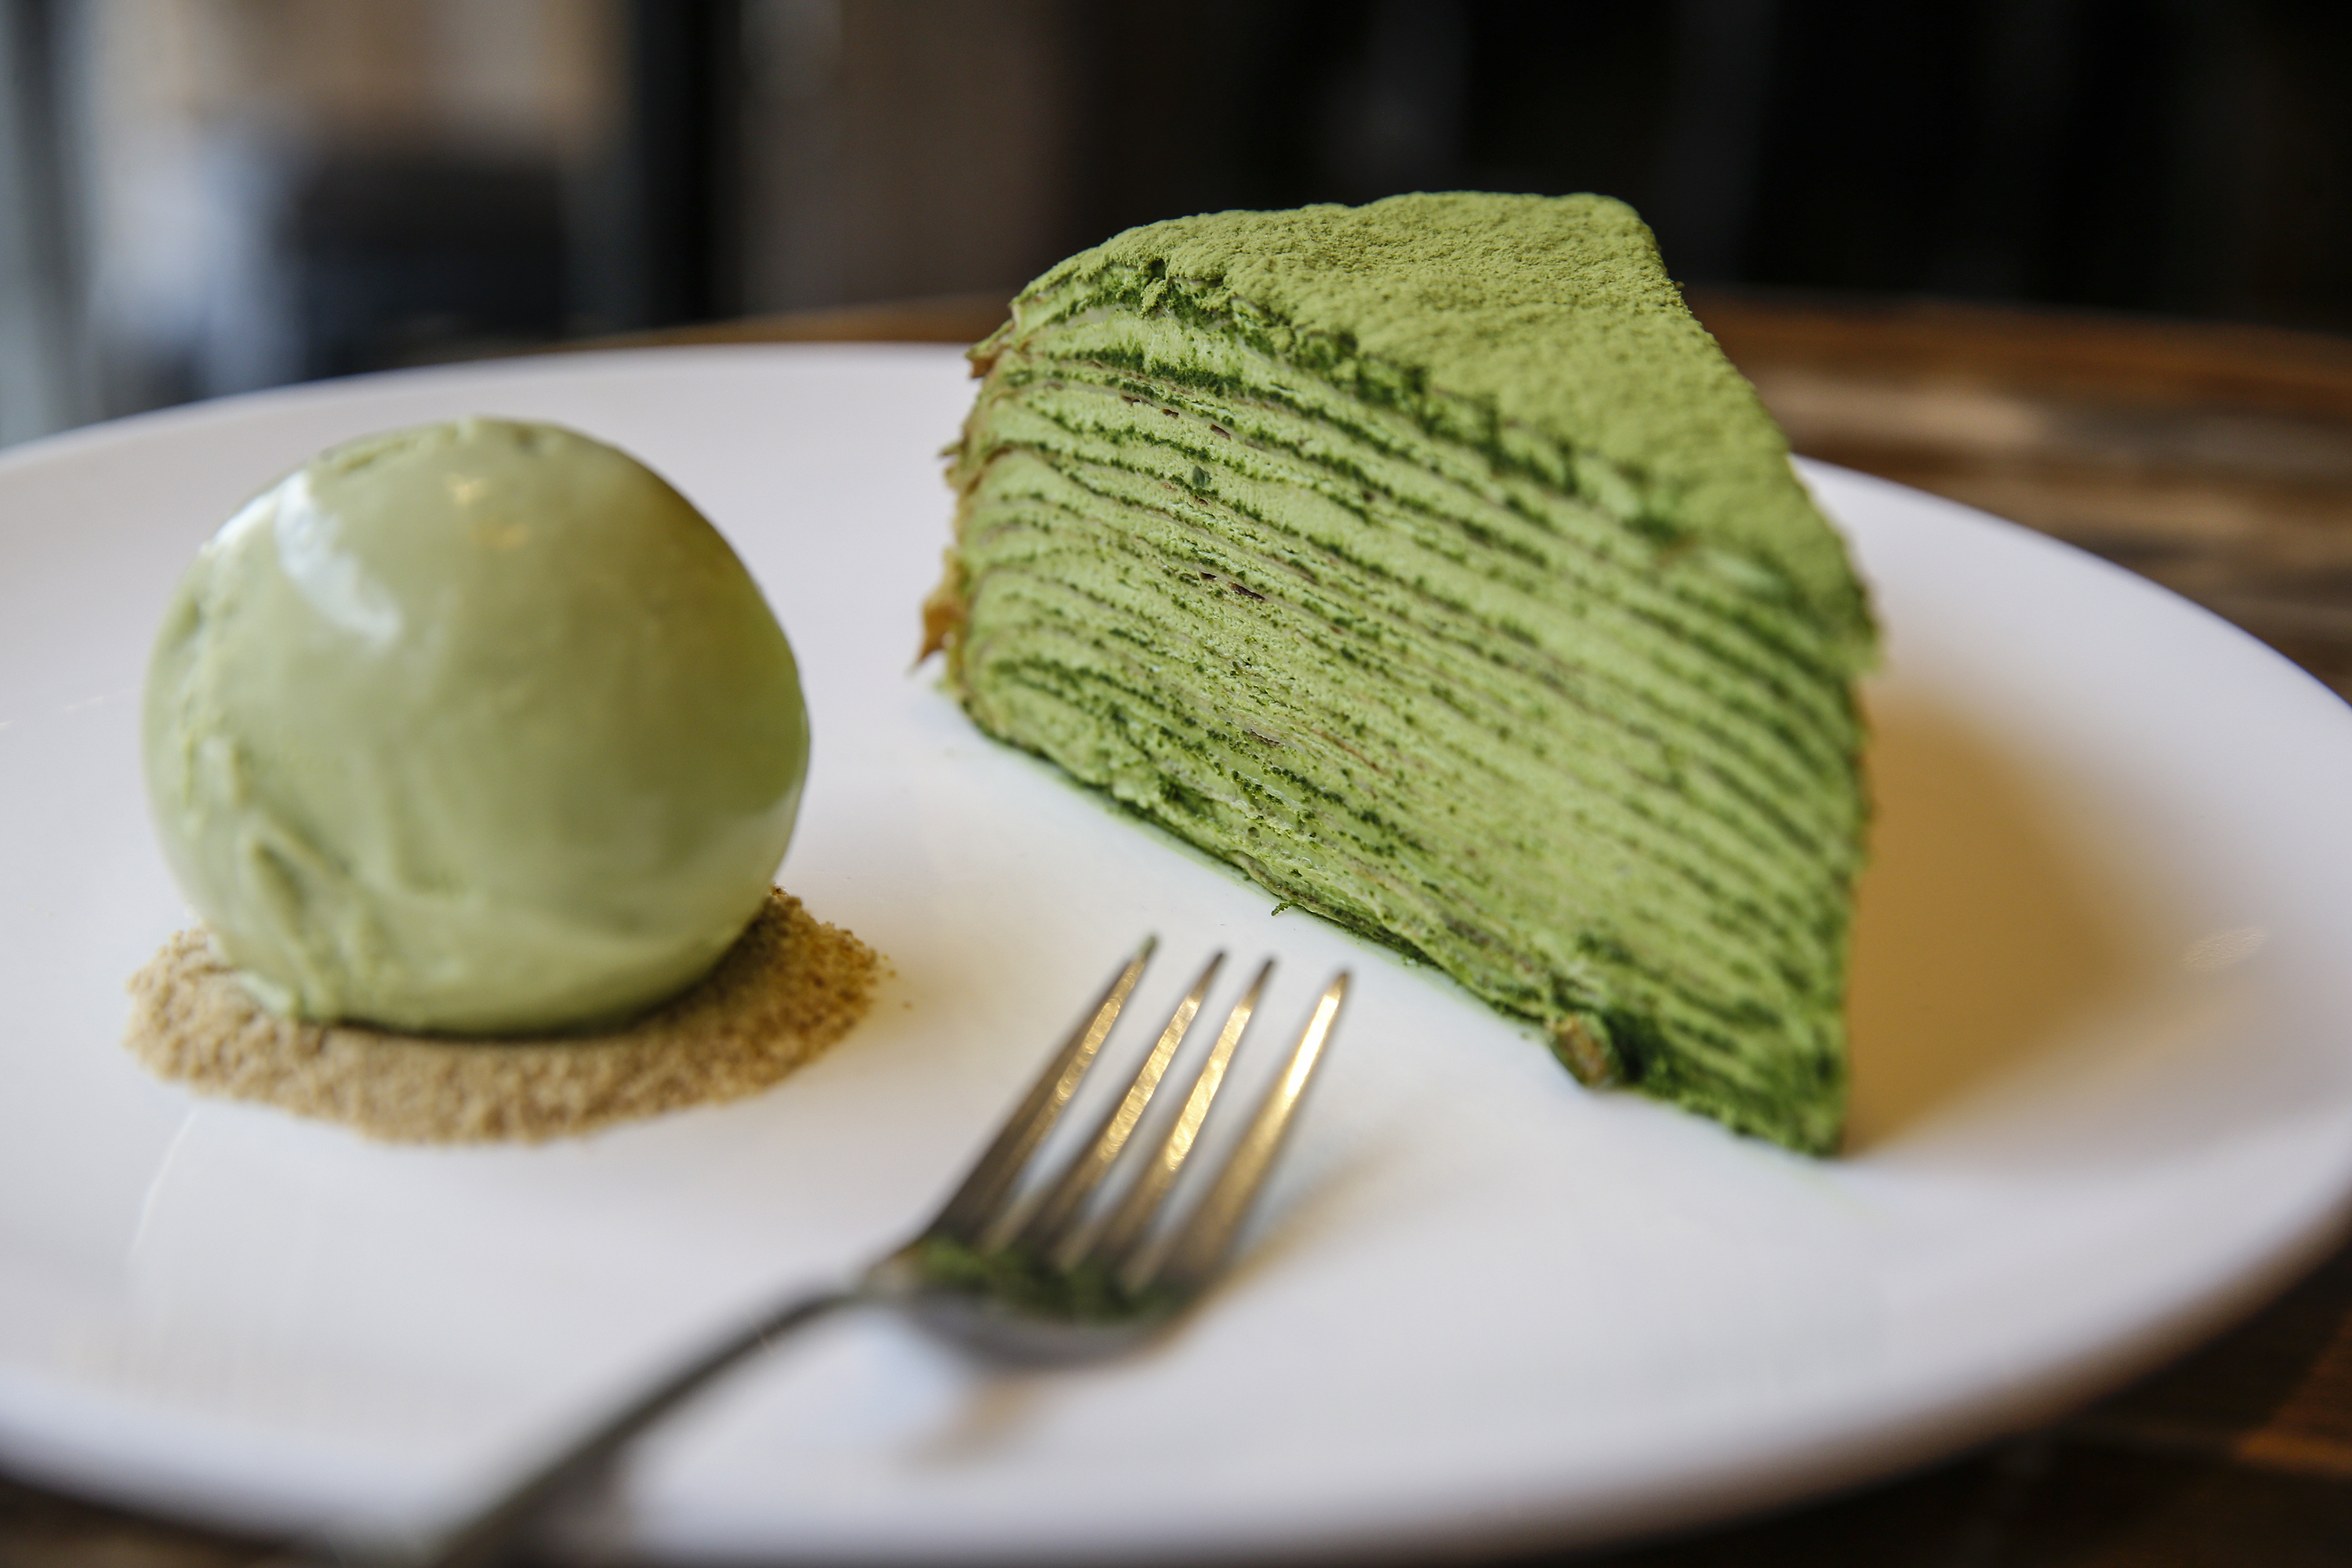 The Matche Mille cake with a scoop of green tea ice cream at Anna Chen´s A La Mousse bakery.